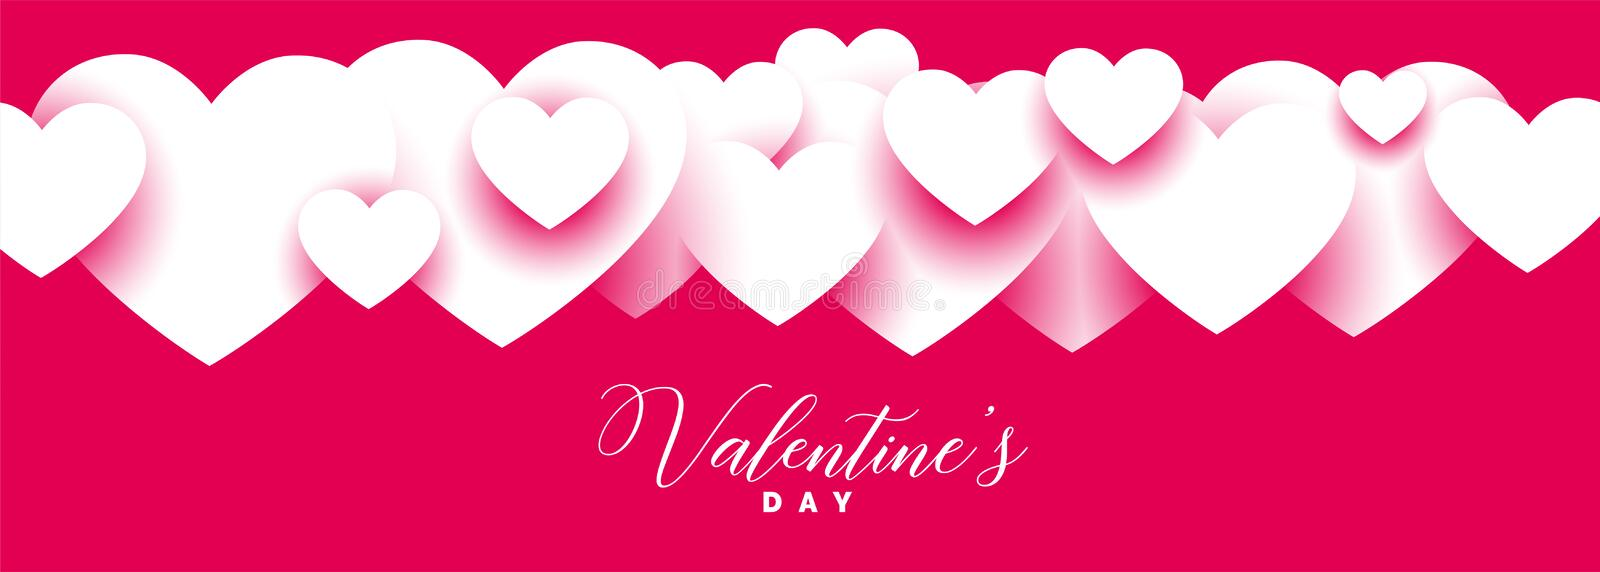 Stylish pink valentines day wide banner design. Vector royalty free illustration